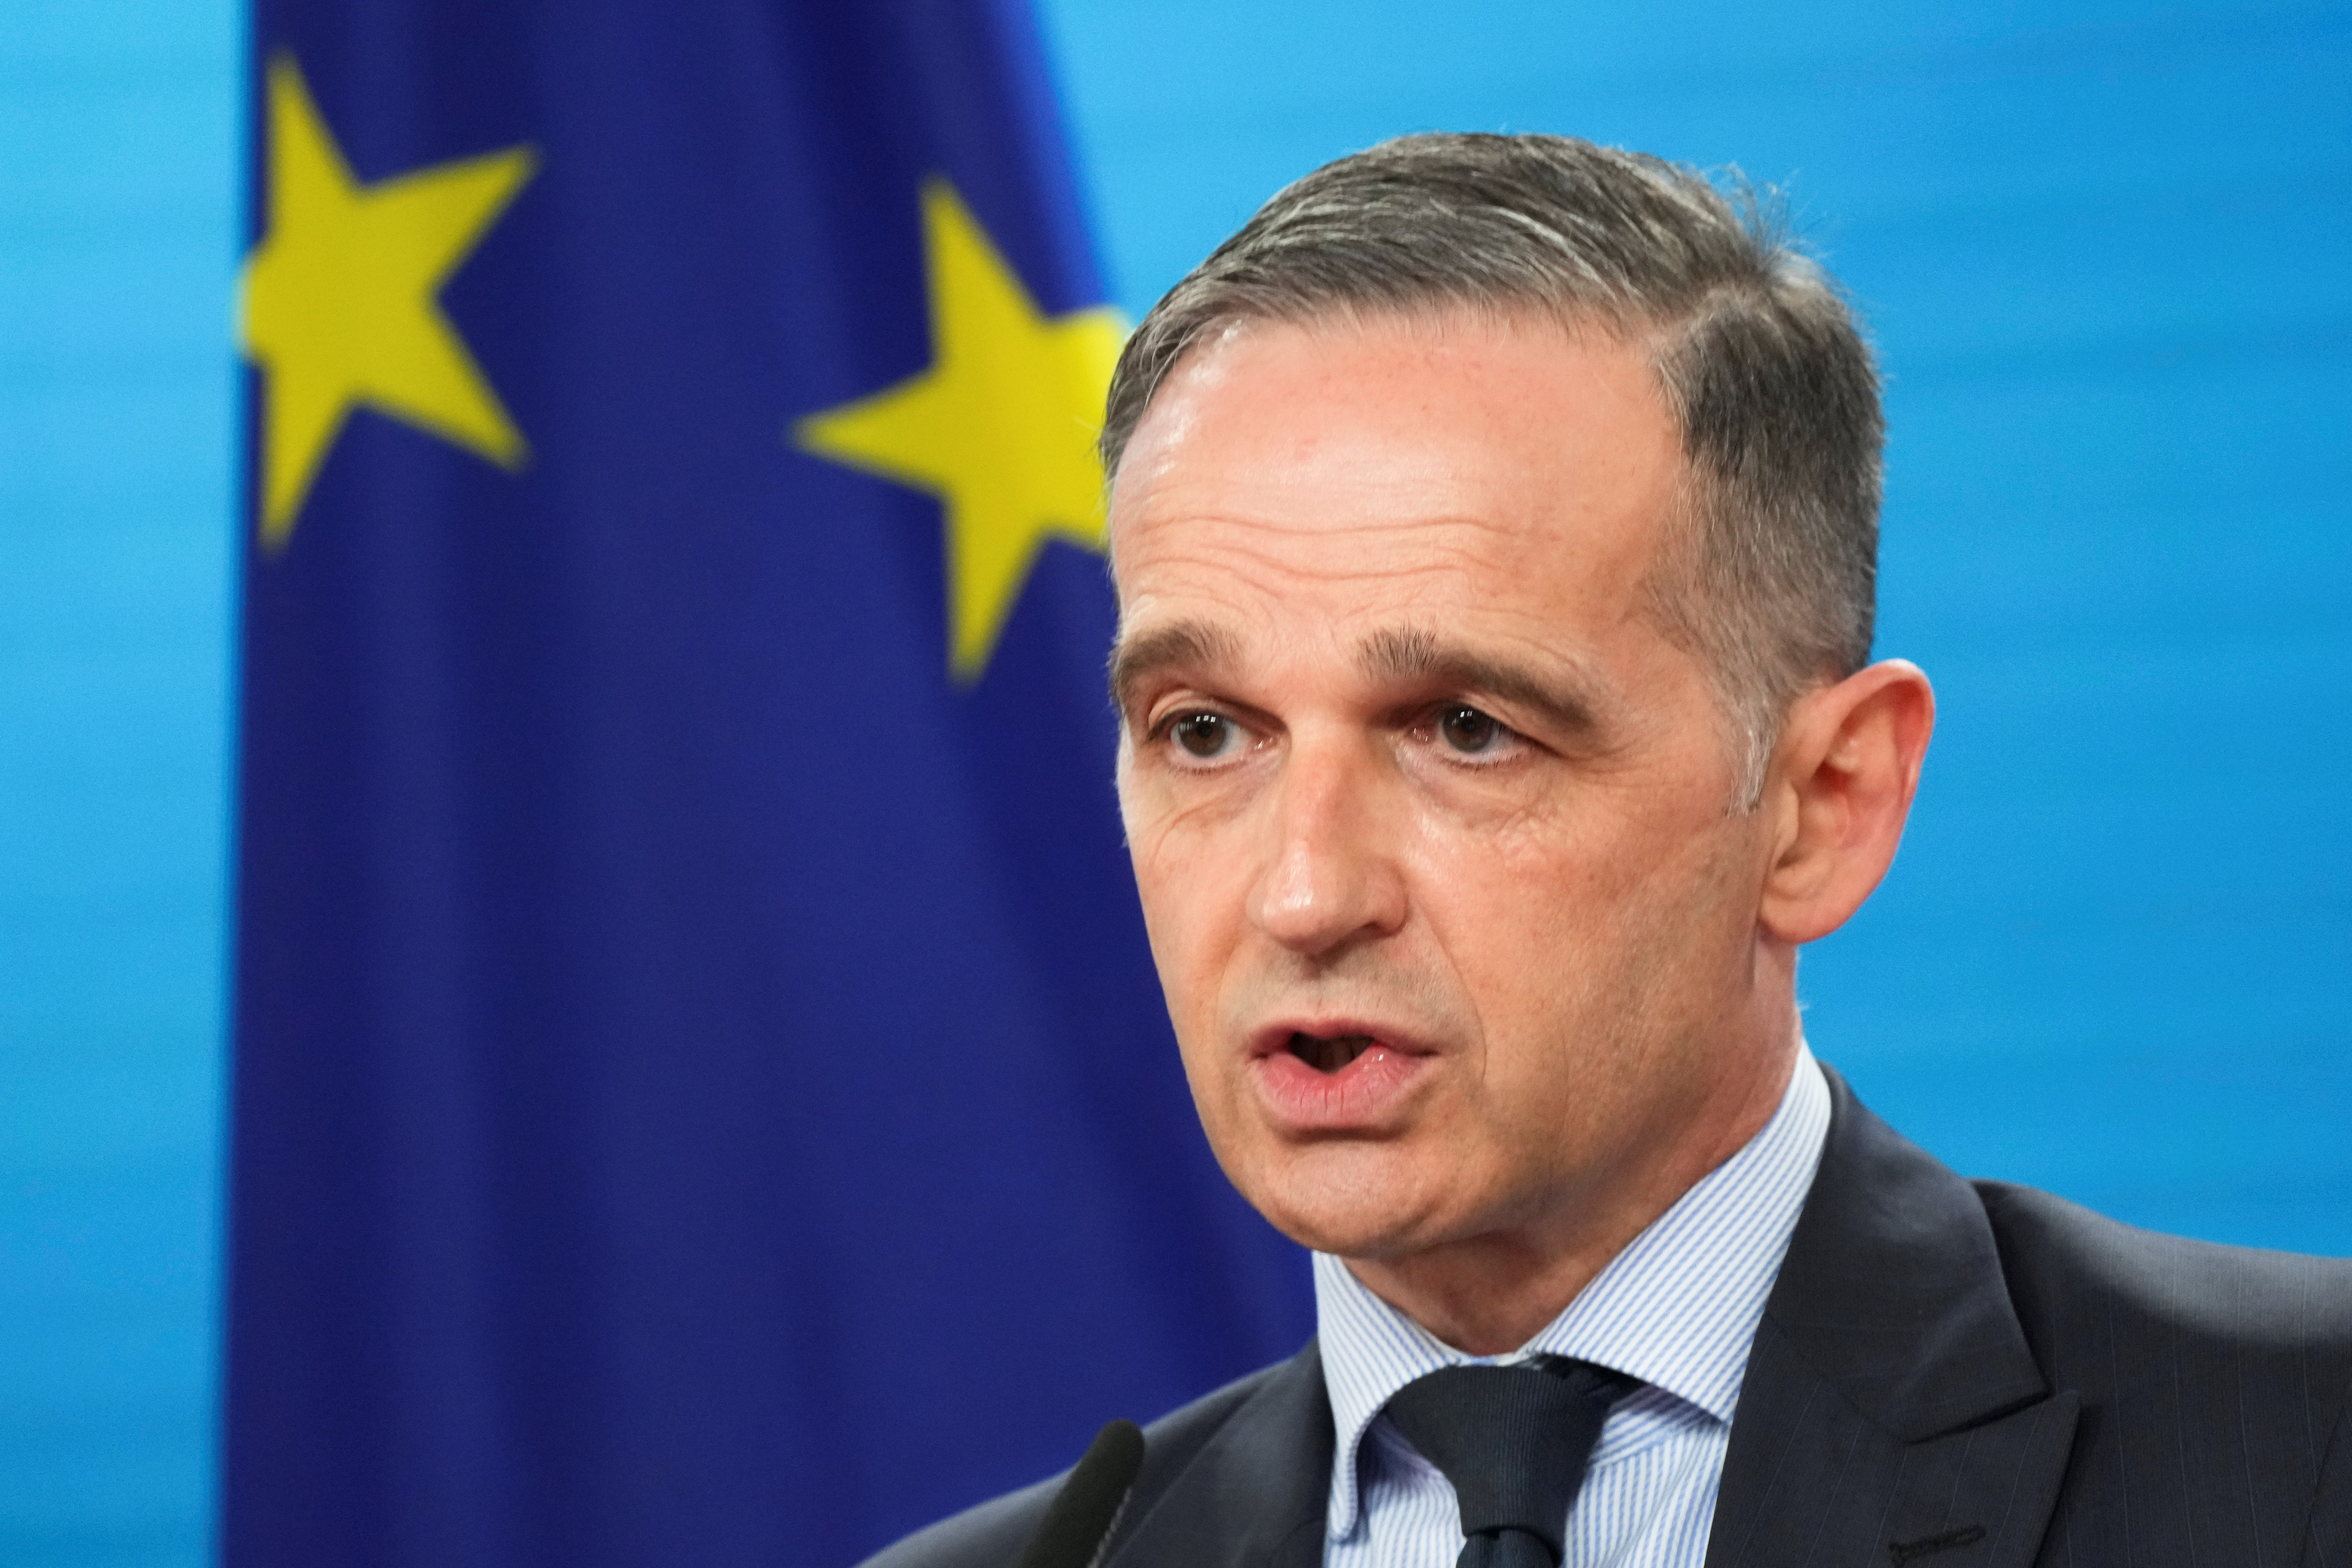 German Foreign Minister Heiko Maas gives a statement ahead of a virtual meeting of EU foreign ministers at the foreign ministry in Berlin, Germany, May 18, 2021. Markus Schreiber/Pool via REUTERS